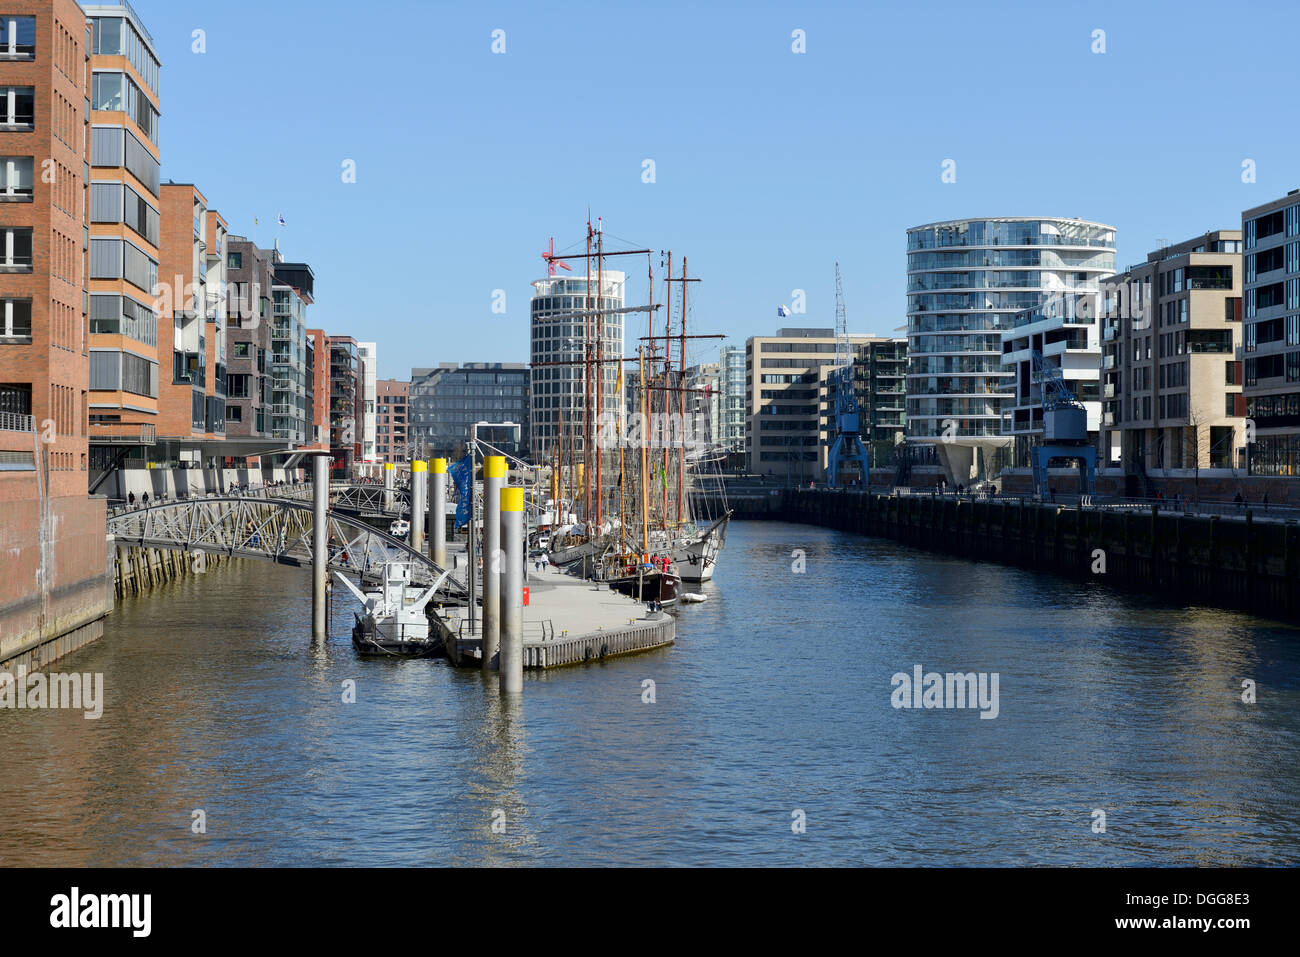 Historic sailing vessels in the Traditionsschiffhafen harbor, modern residential and office buildings, Sandtorhafen - Stock Image